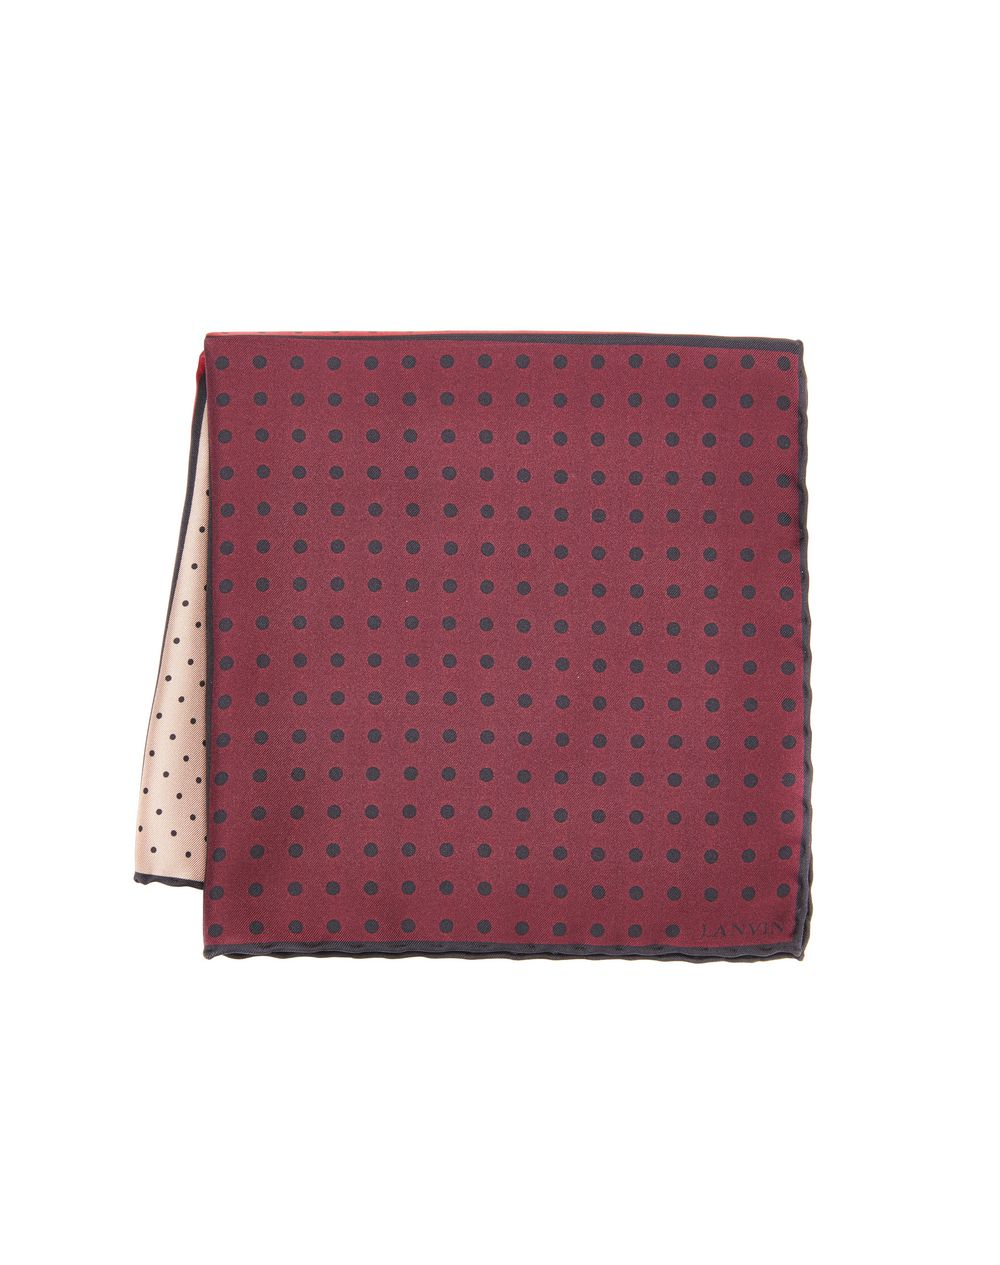 RED DOTTED POCKET HANDKERCHIEF - Lanvin